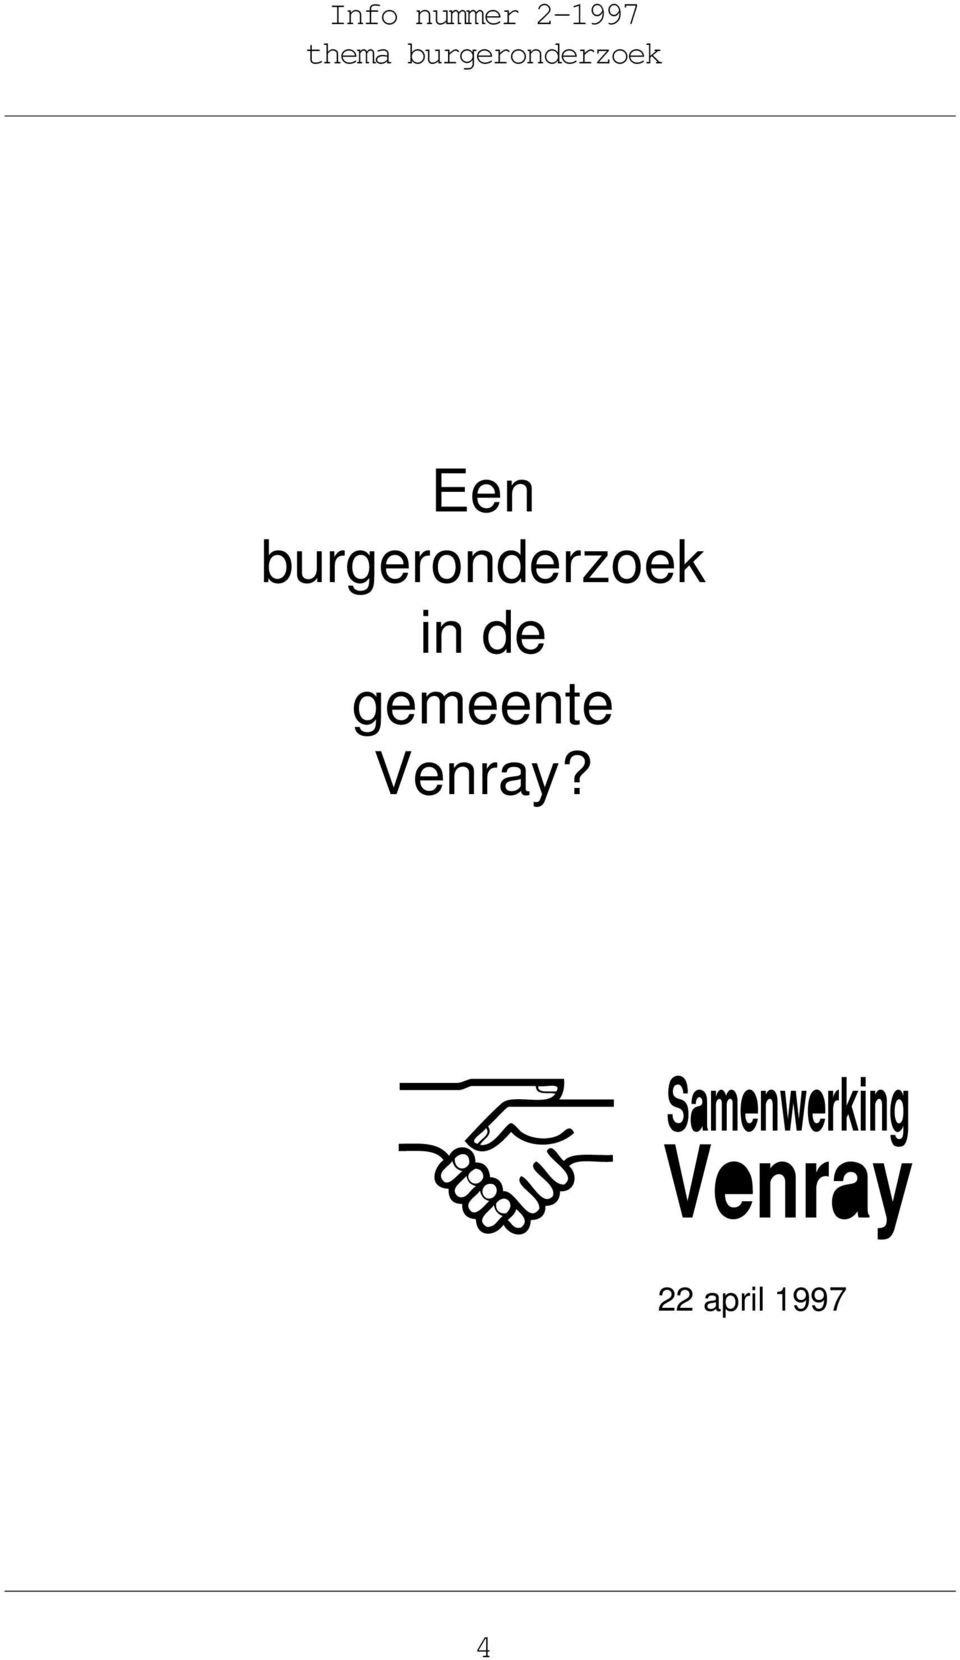 burgeronderzoek in de